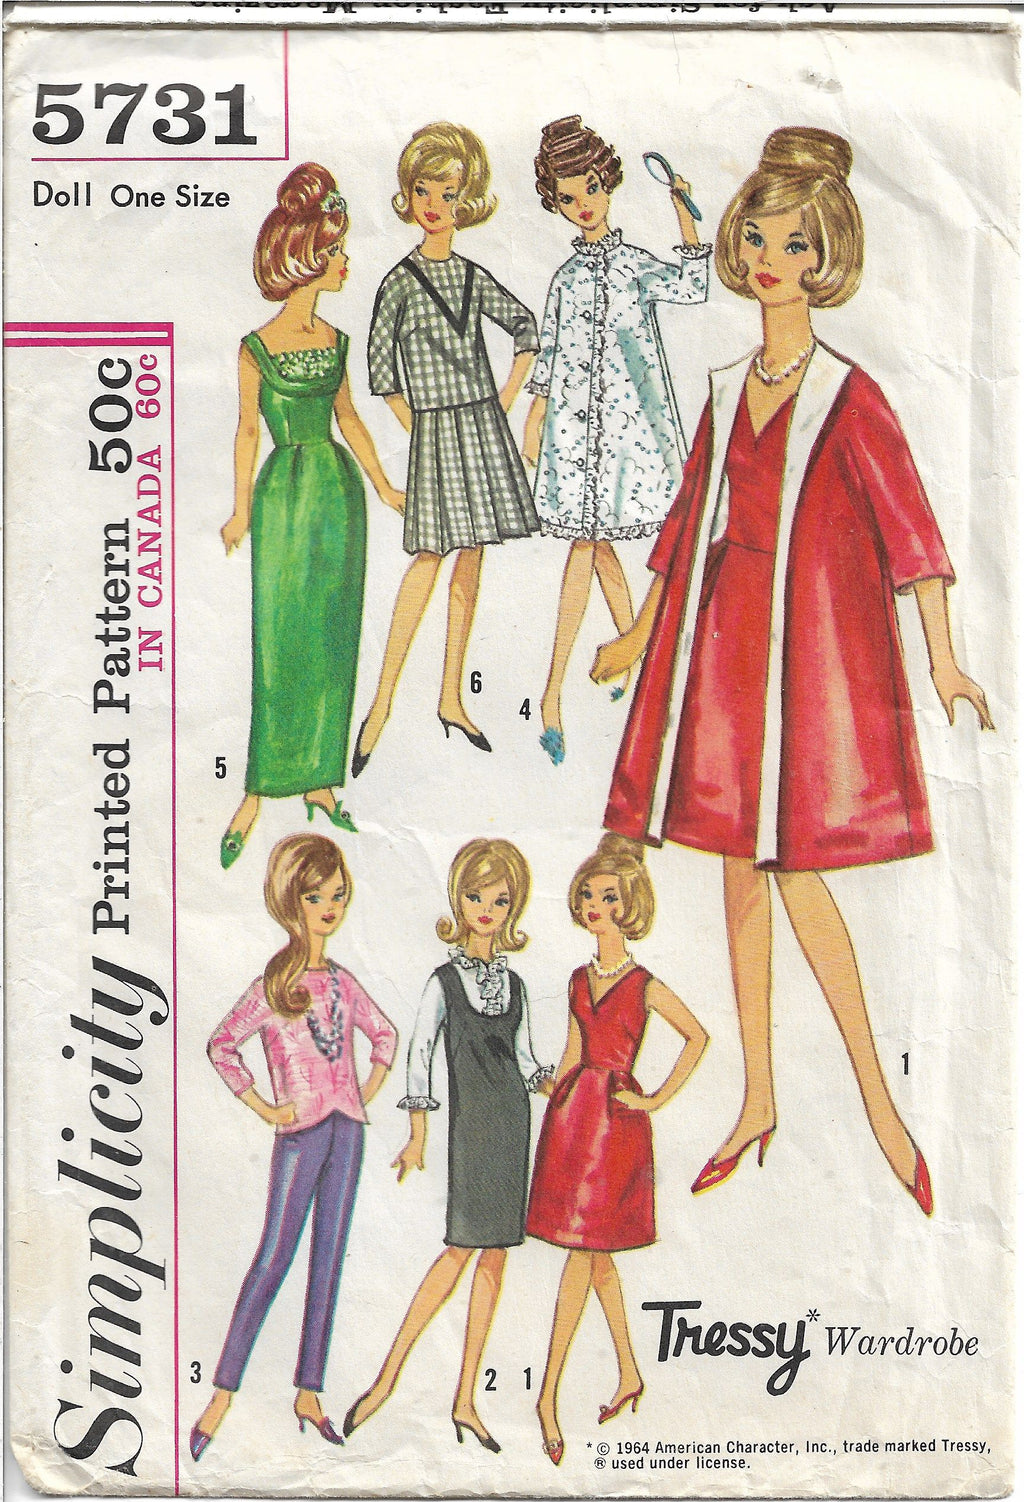 Simplicity 5731 Barbie Doll Vintage Sewing Craft Pattern 1960s - VintageStitching - Vintage Sewing Patterns